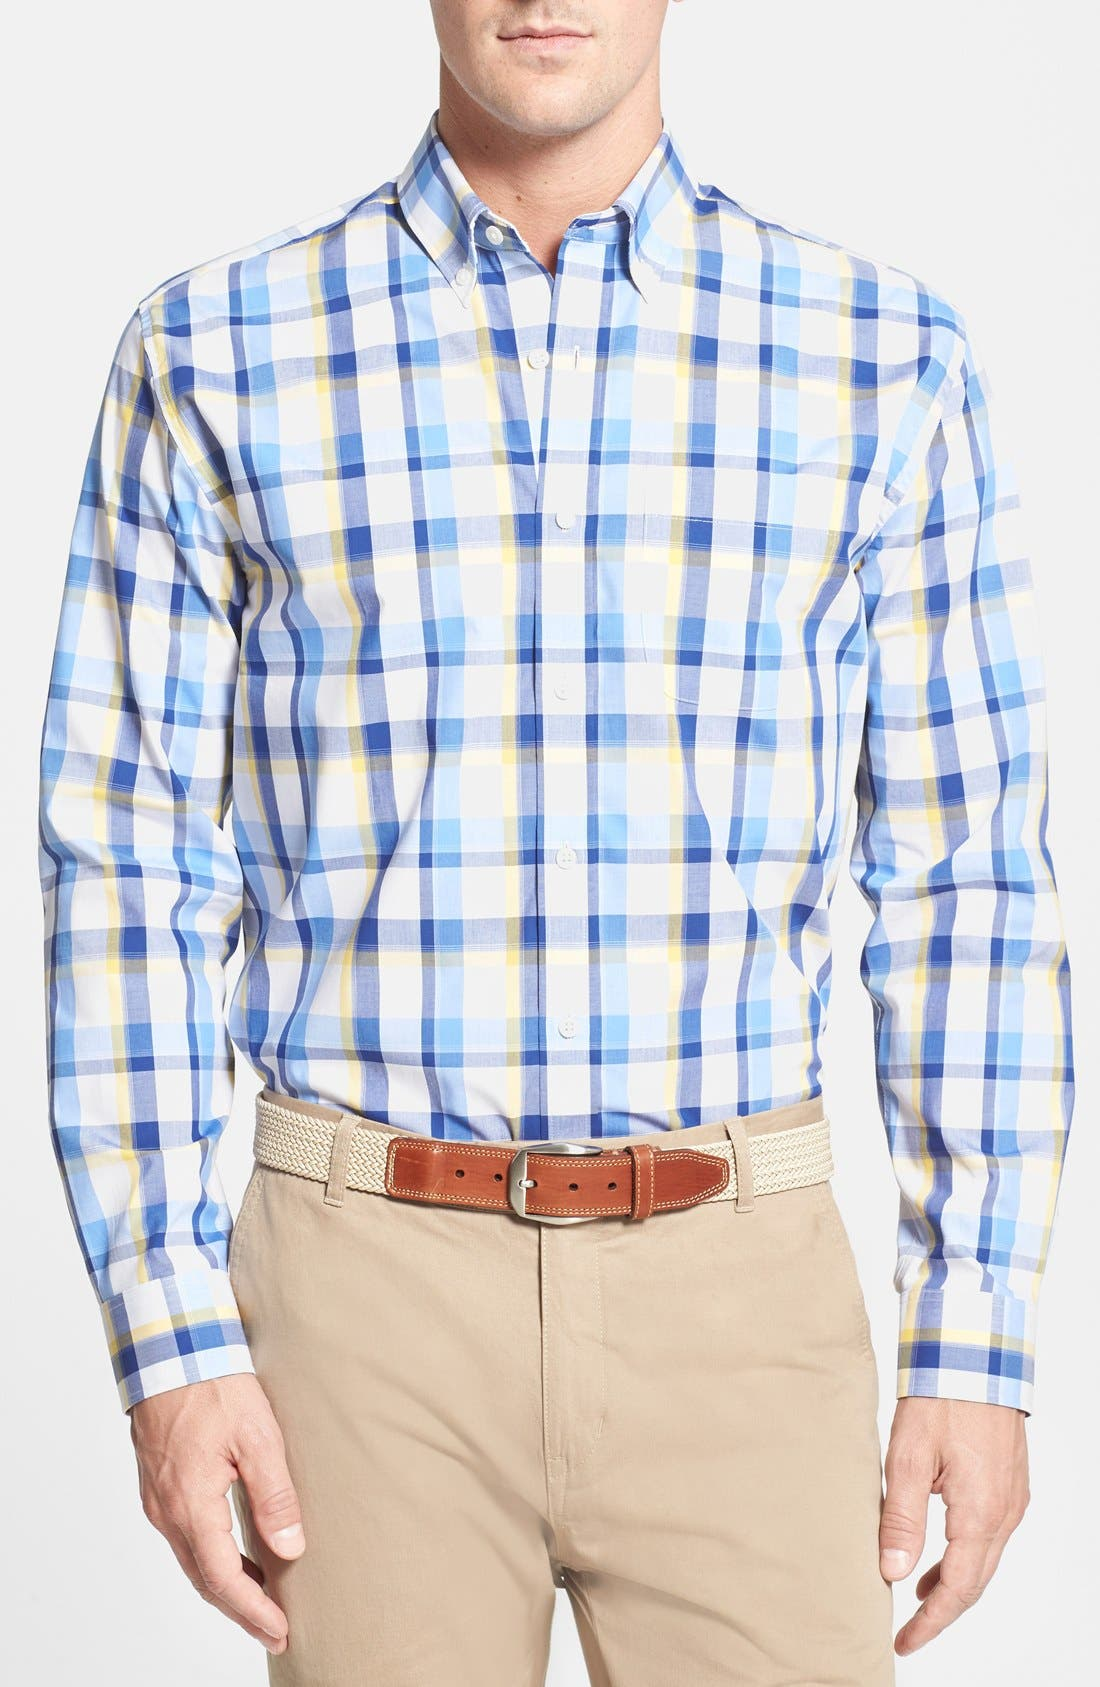 Alternate Image 1 Selected - Cutter & Buck 'Pierce' Classic Fit Plaid Poplin Sport Shirt (Big & Tall)